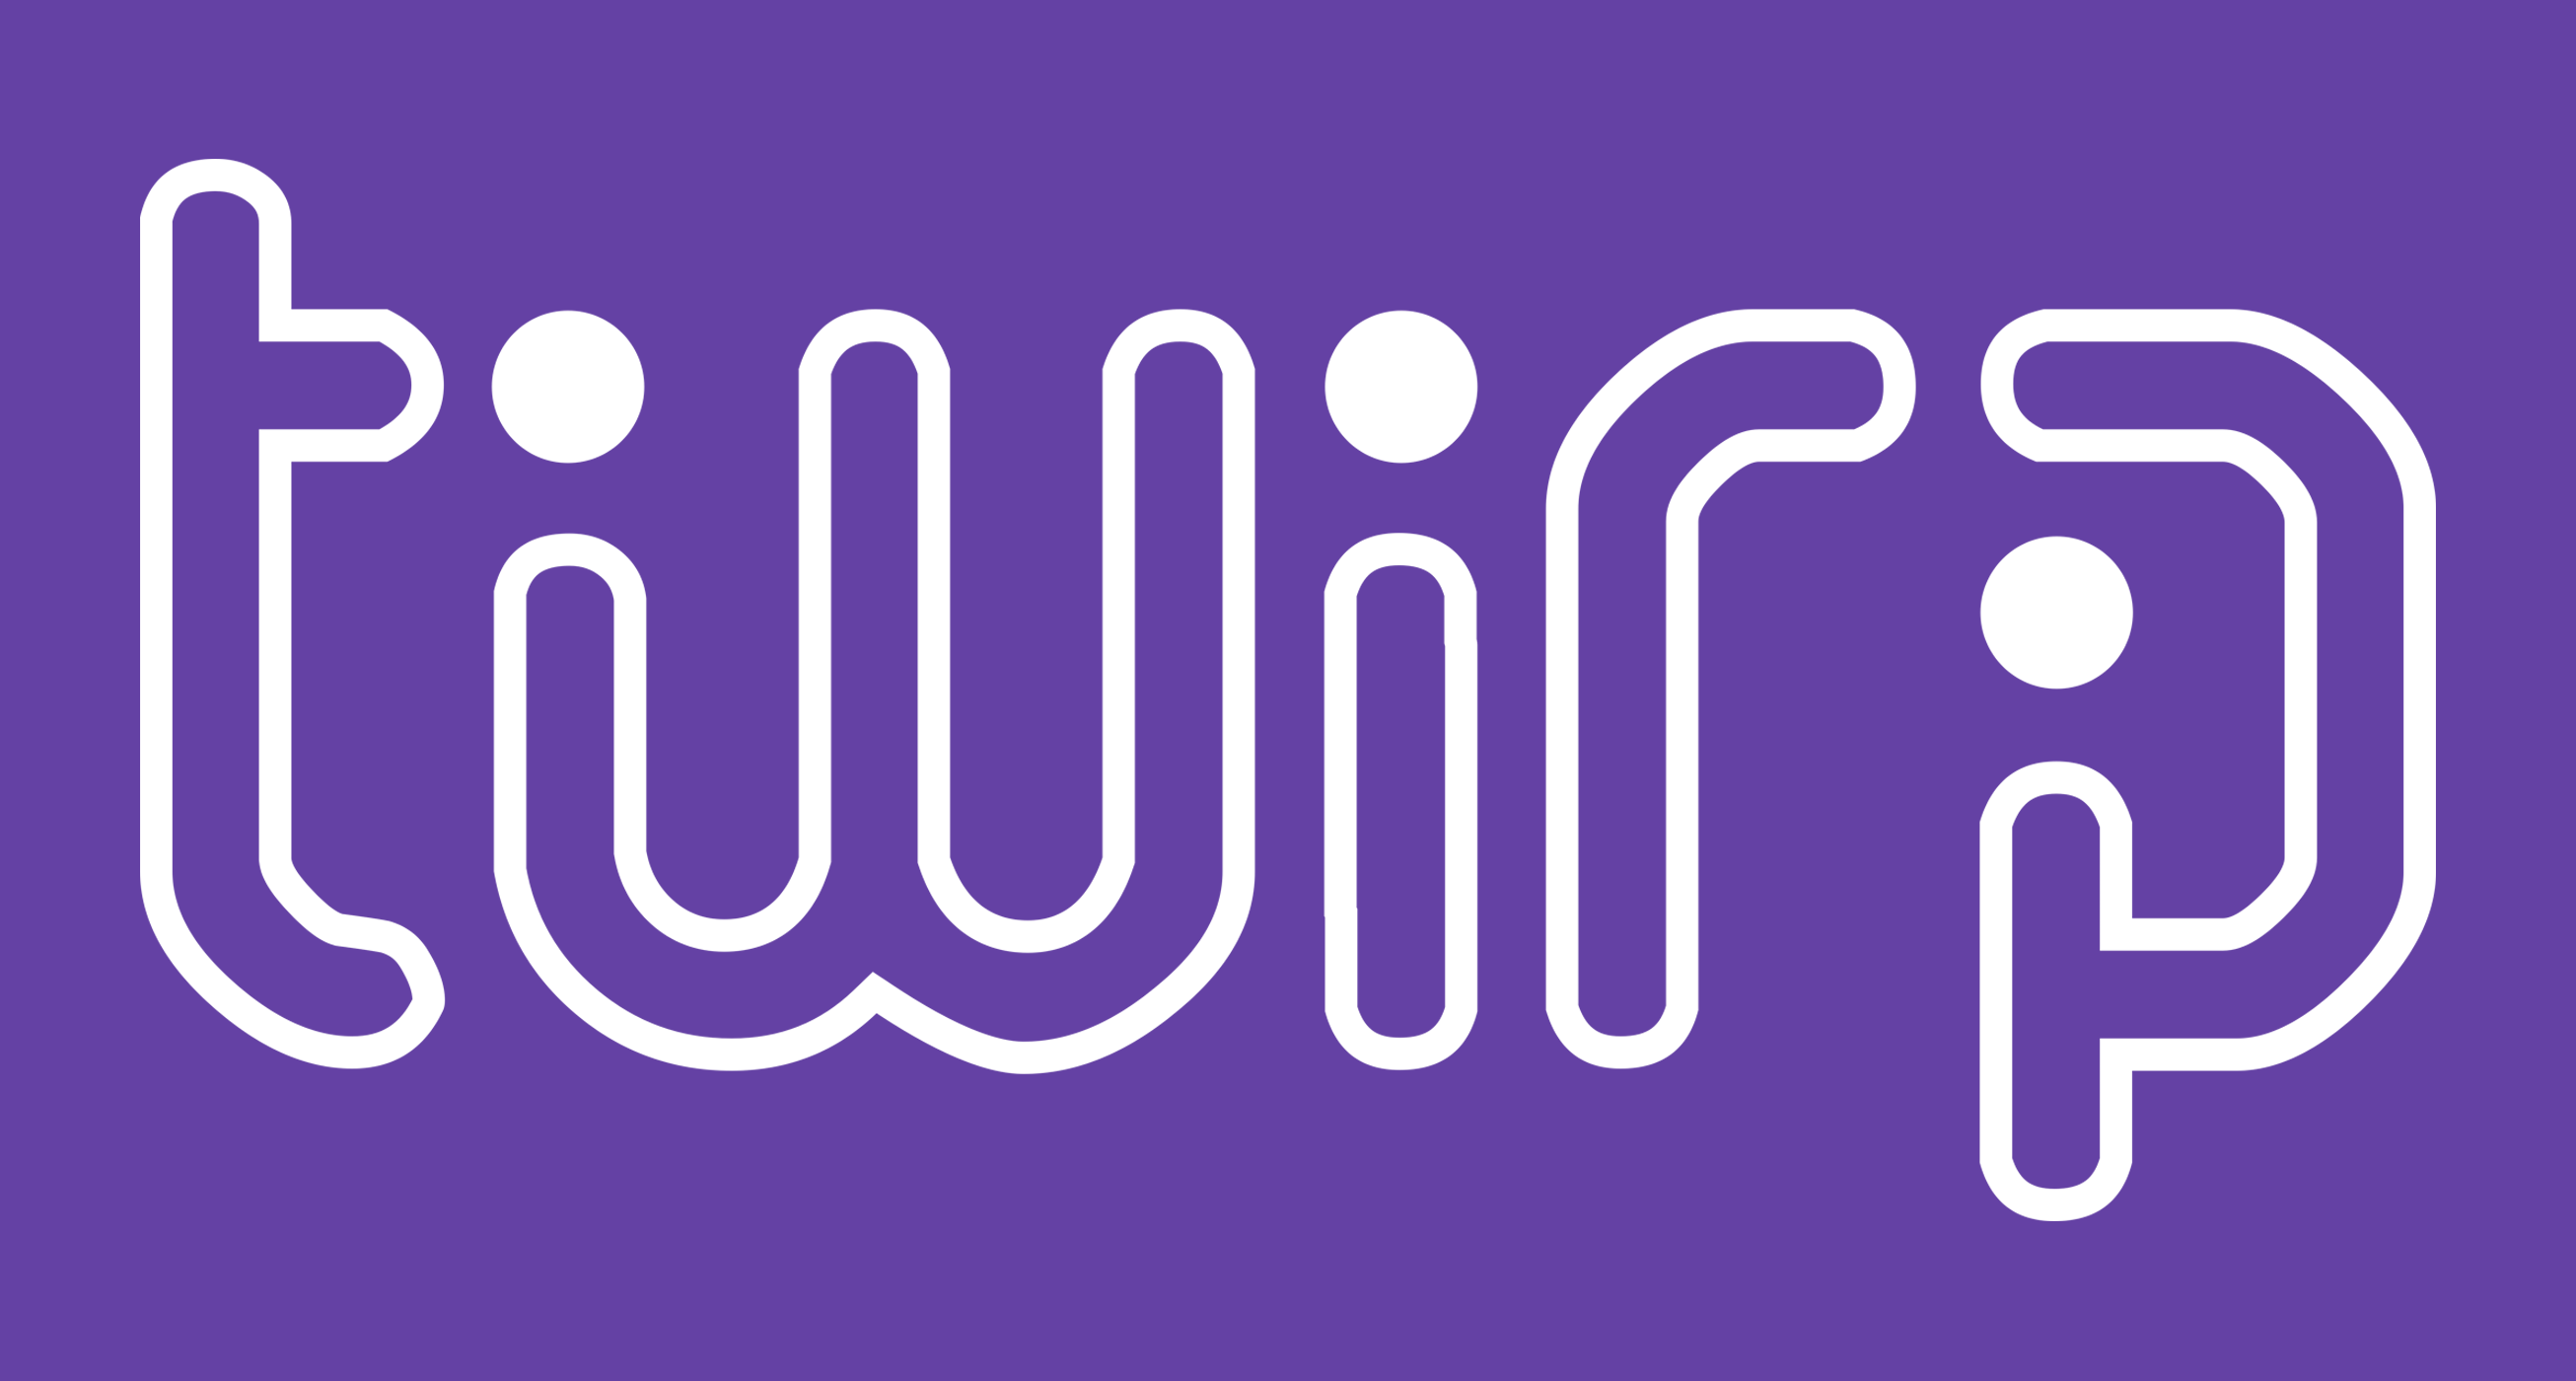 Twirp: a sweet new RPC framework for Go - Twitch Blog